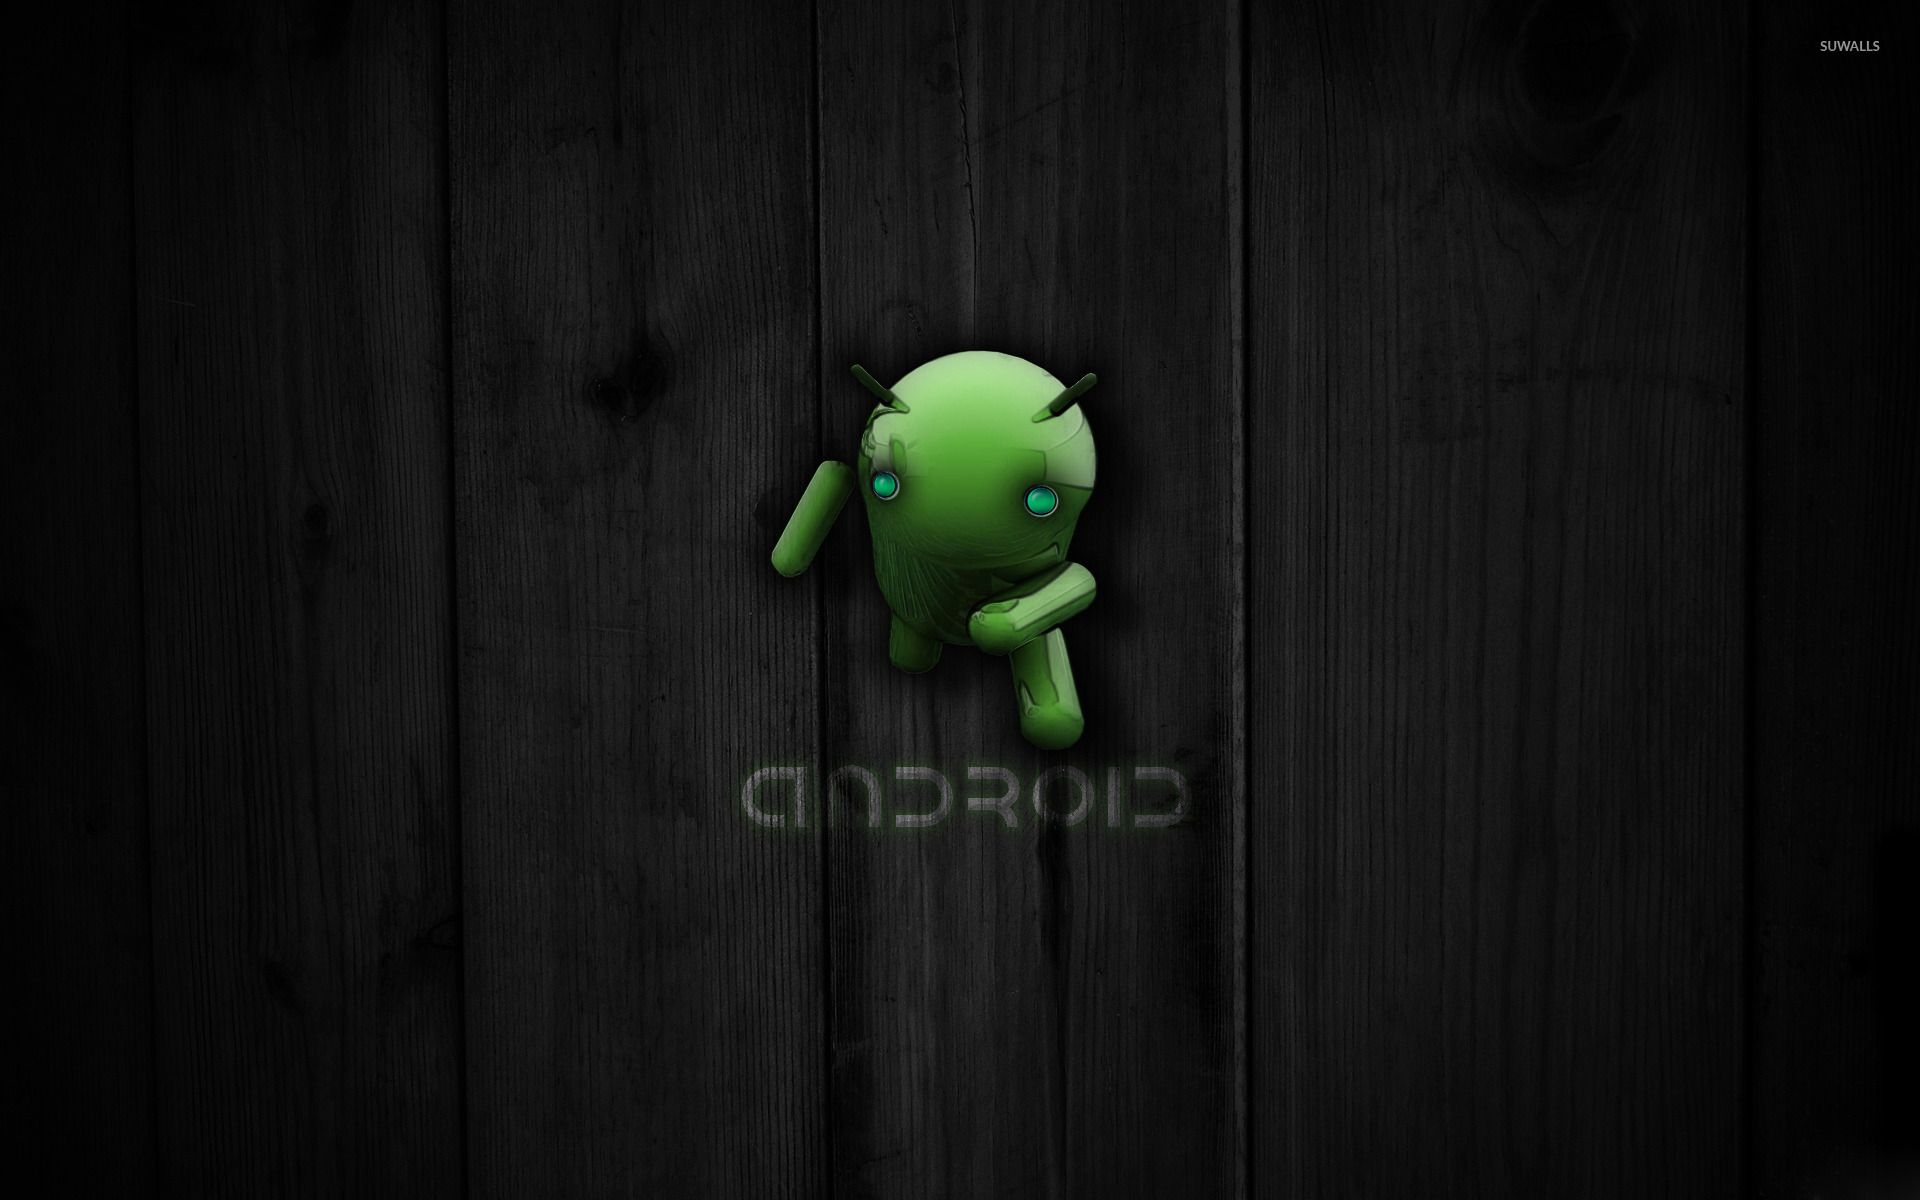 Android Computer Wallpapers - Top Free ...